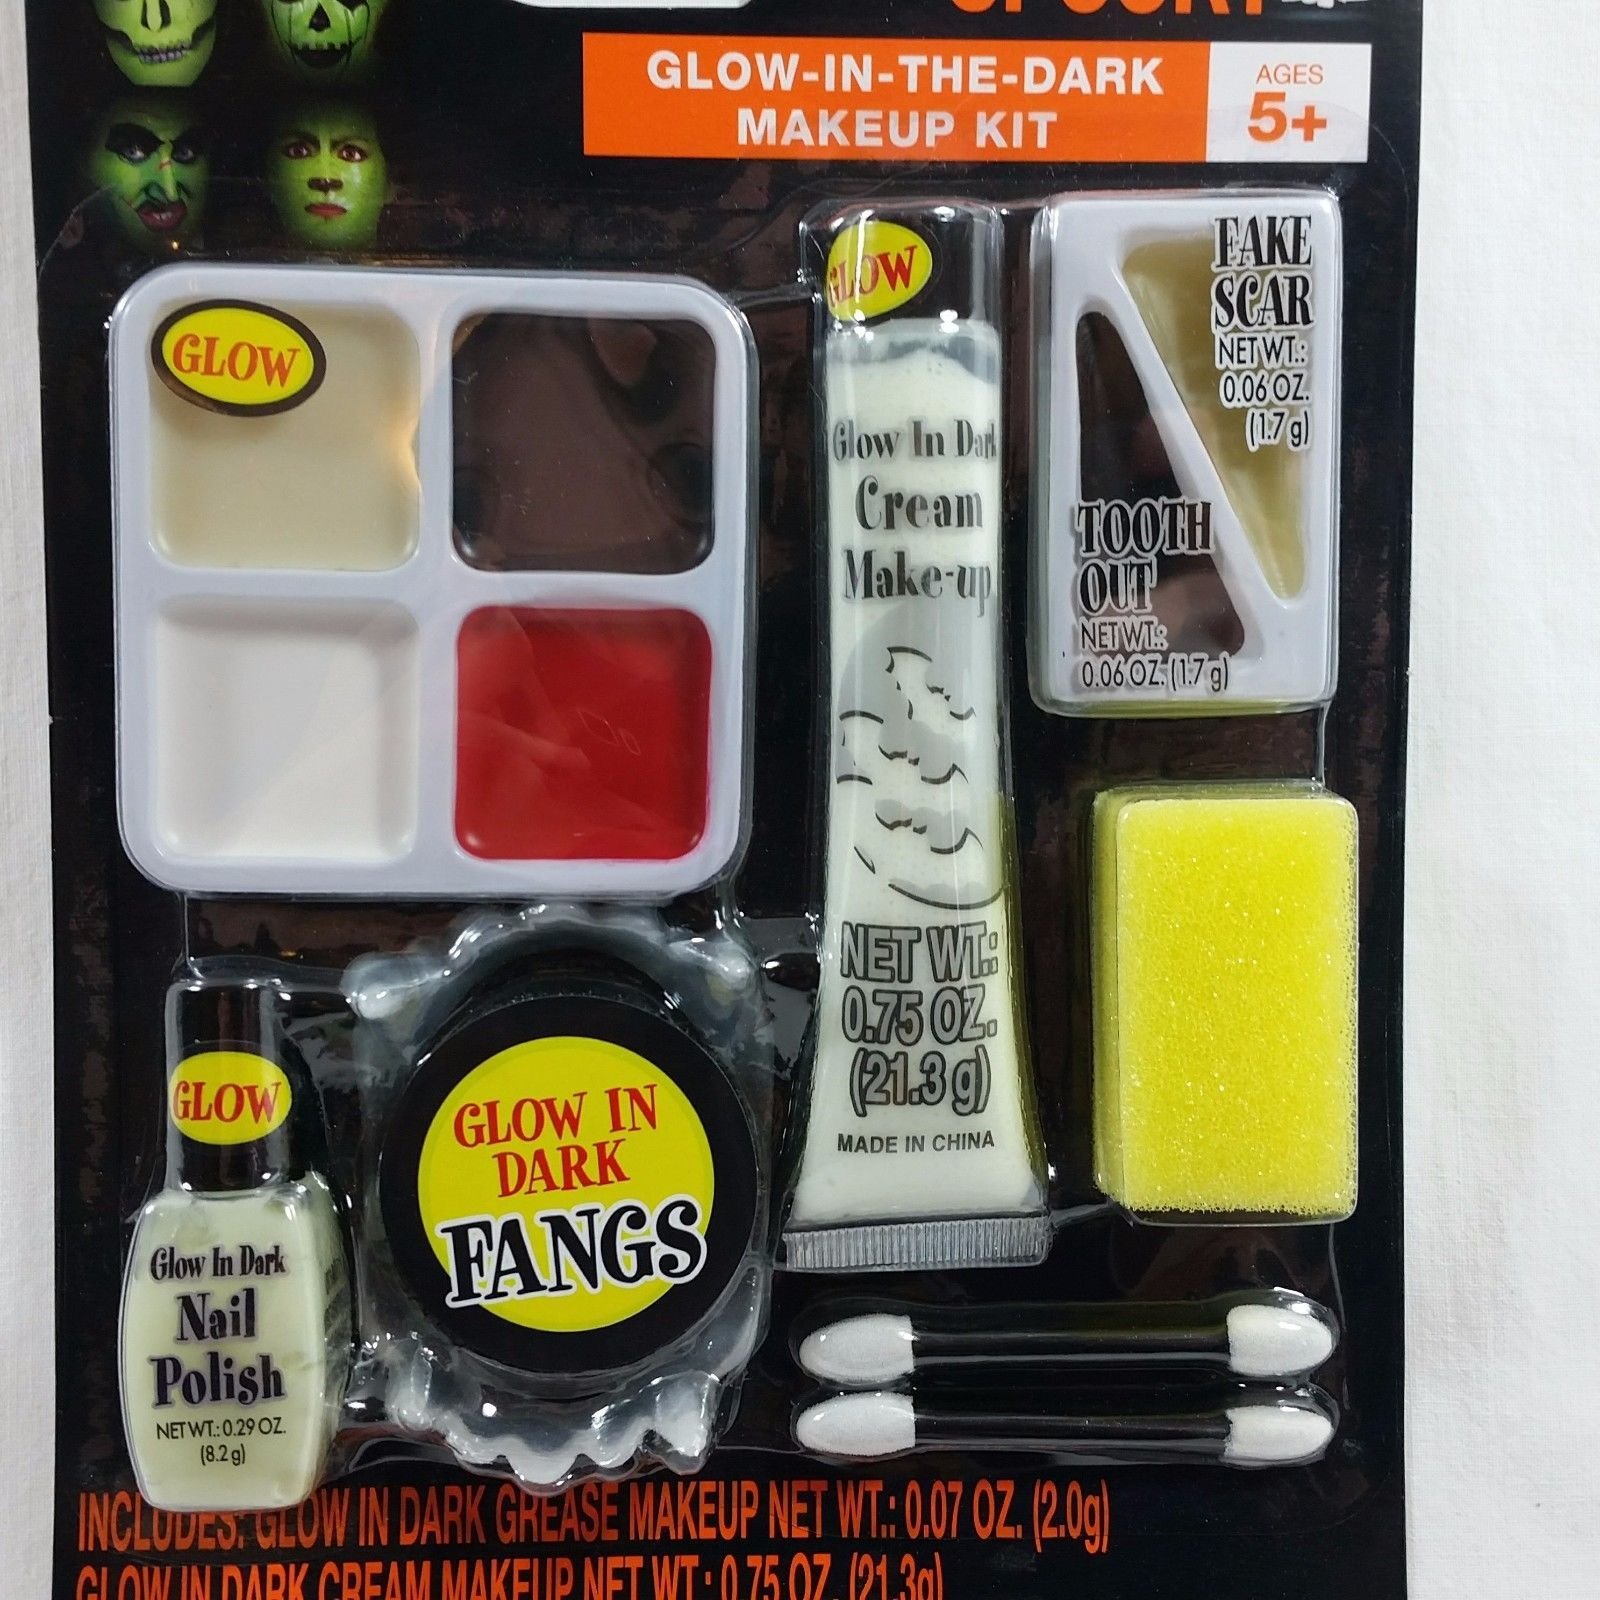 Halloween Glow In The Dark Makeup Kit Grease Makeup Fangs Fake Scar Tooth Out